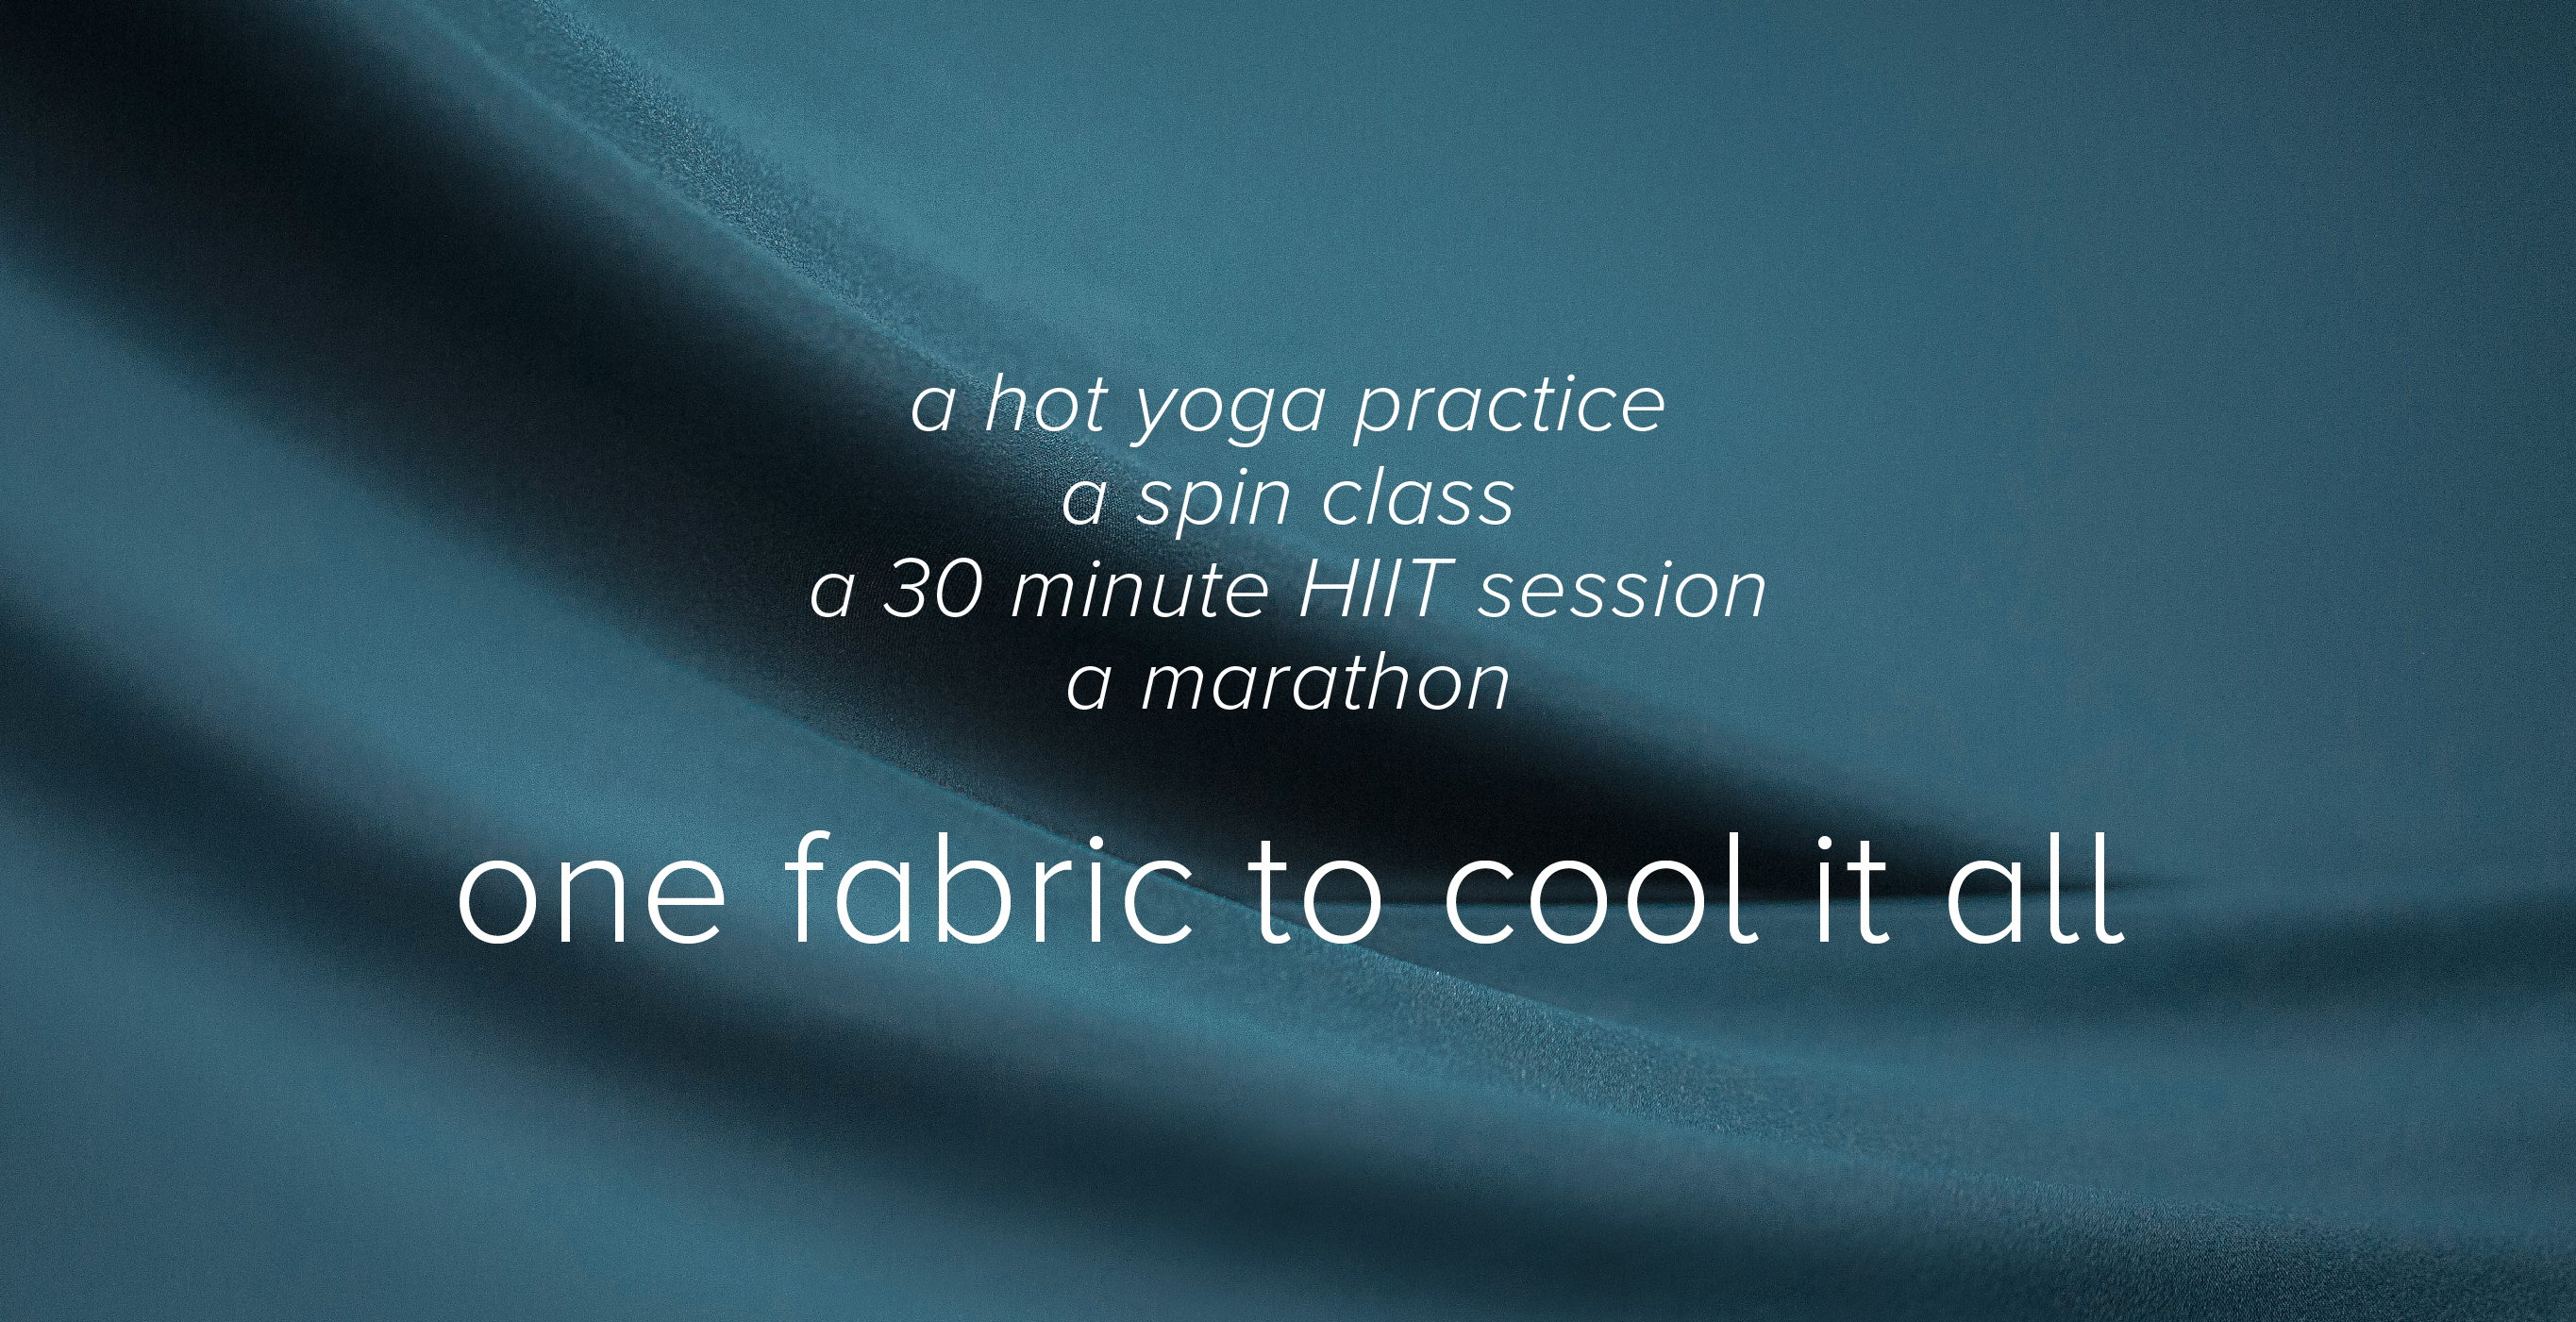 One fabric to cool it all